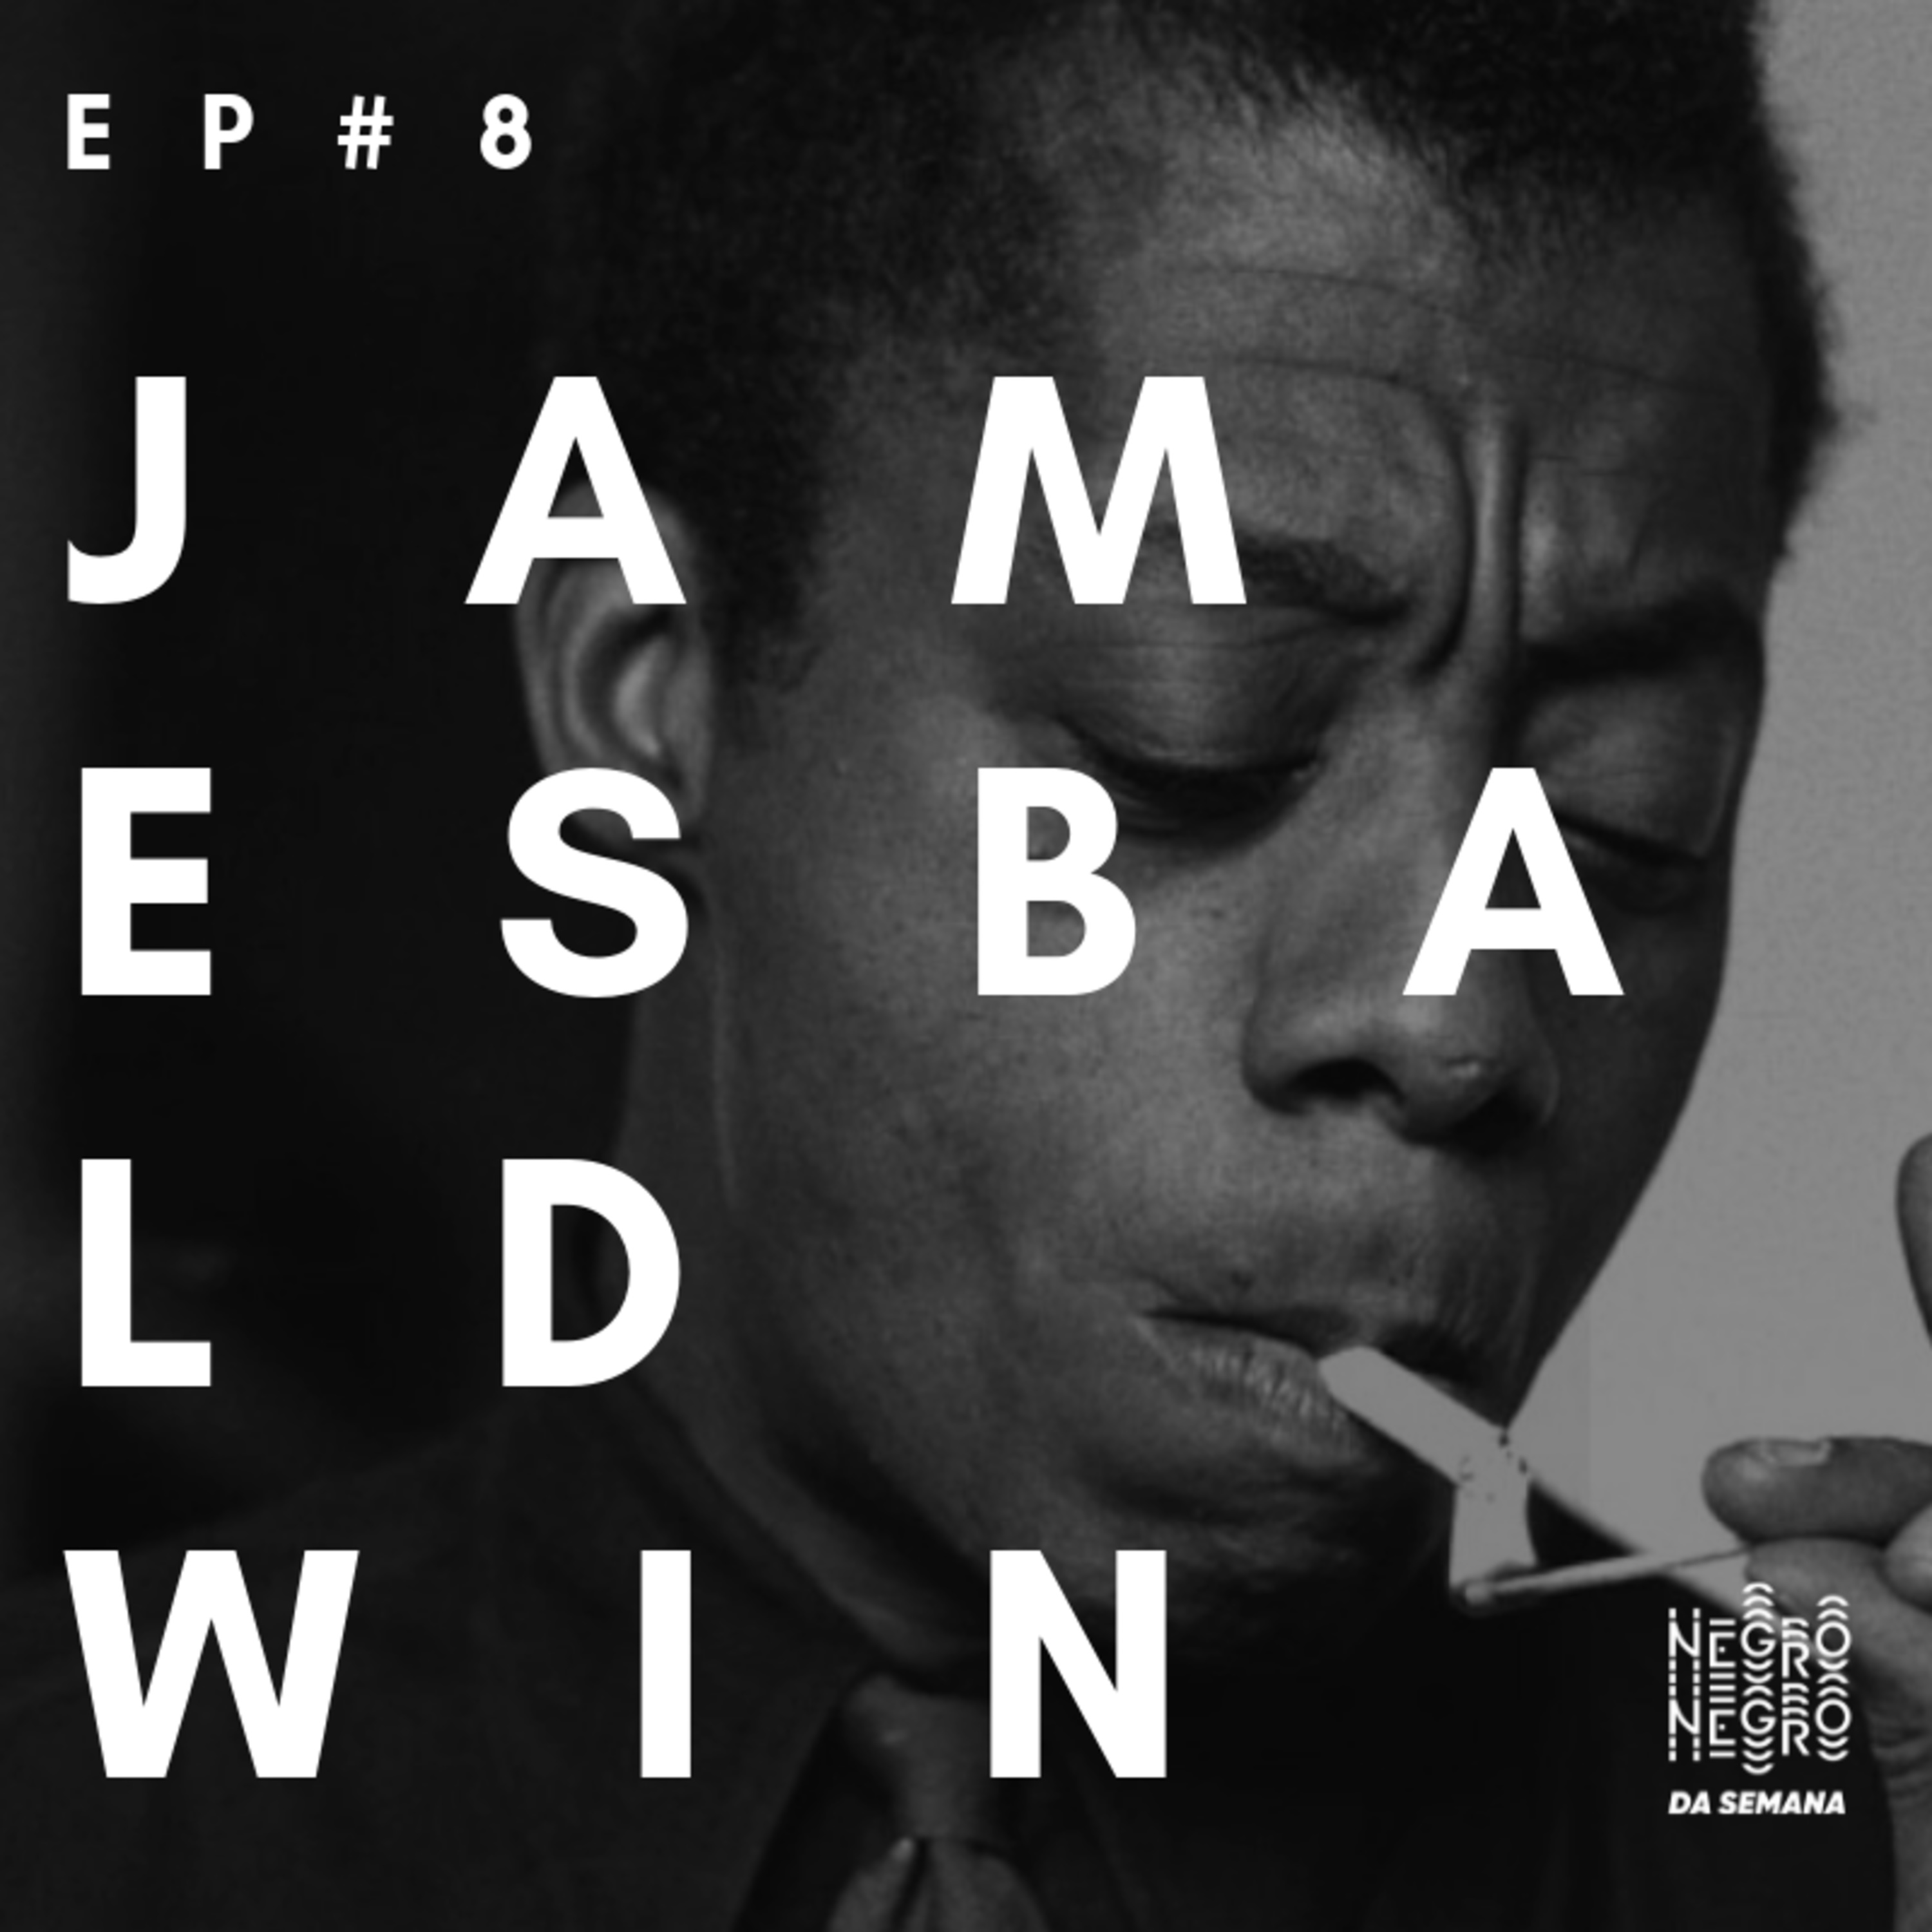 Negro da Semana - Ep#8 - James Baldwin